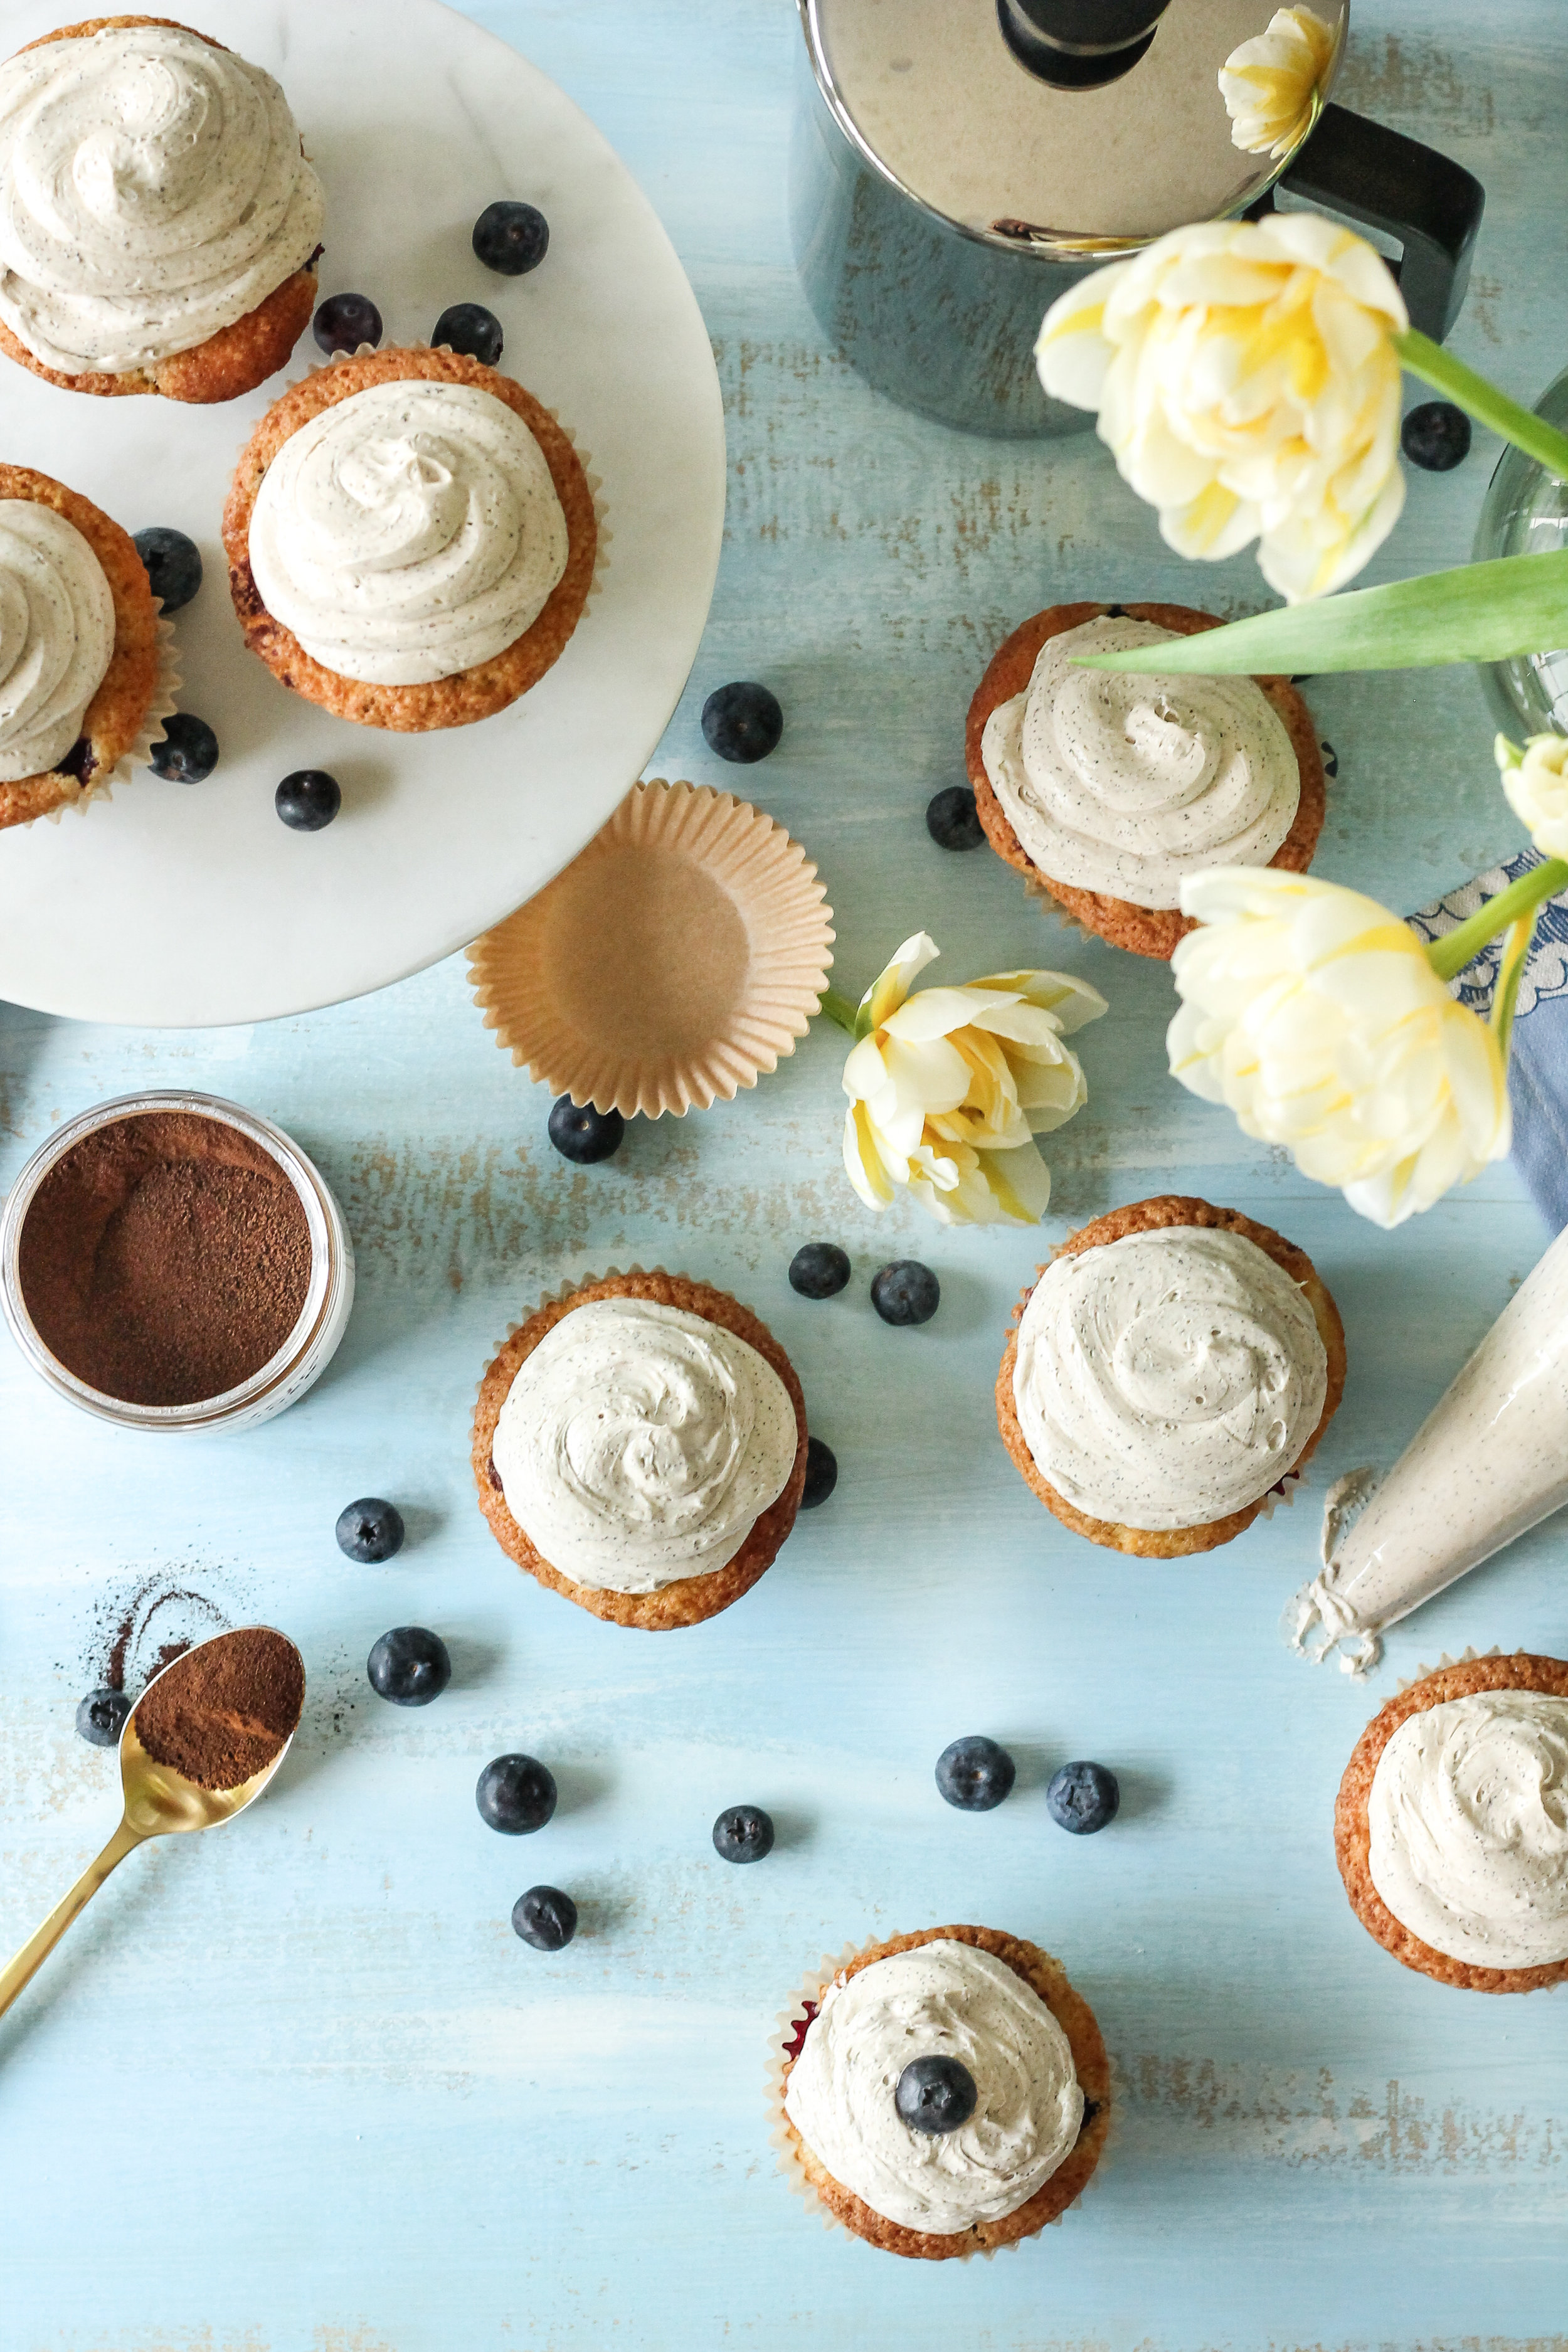 These Blueberry Coffee Cake Cupcakes with Espresso Swiss Buttercream are everyone's favorite breakfast items packed into one scrumptious cupcake!  Find the recipe on WWW.PEDANTICFOODIE.COM!